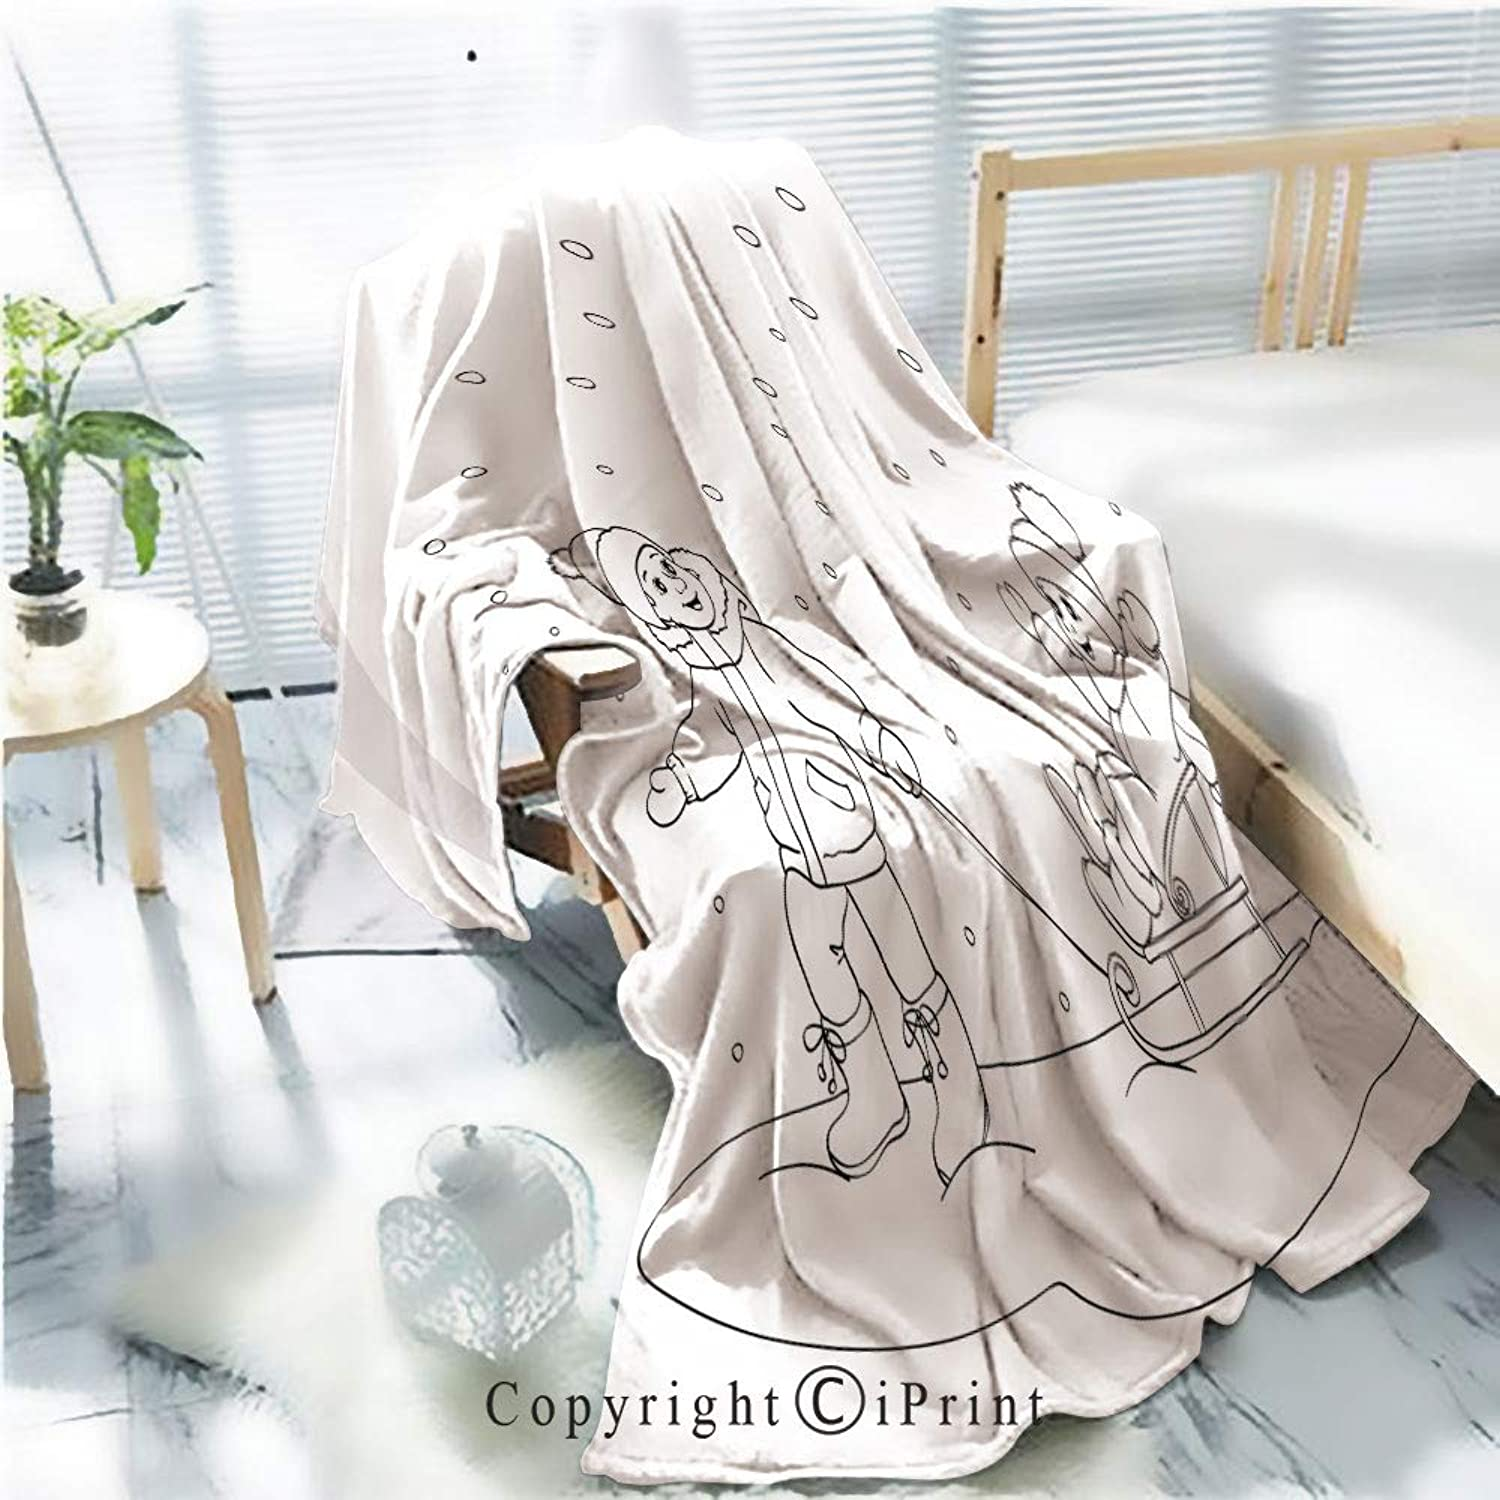 Printed Soft Blanket Premium Blanket,coloring Book or Page Boy and Girl with sled Microfiber Aqua Blanket for Couch Bed Living Room,W59.1 xH78.7